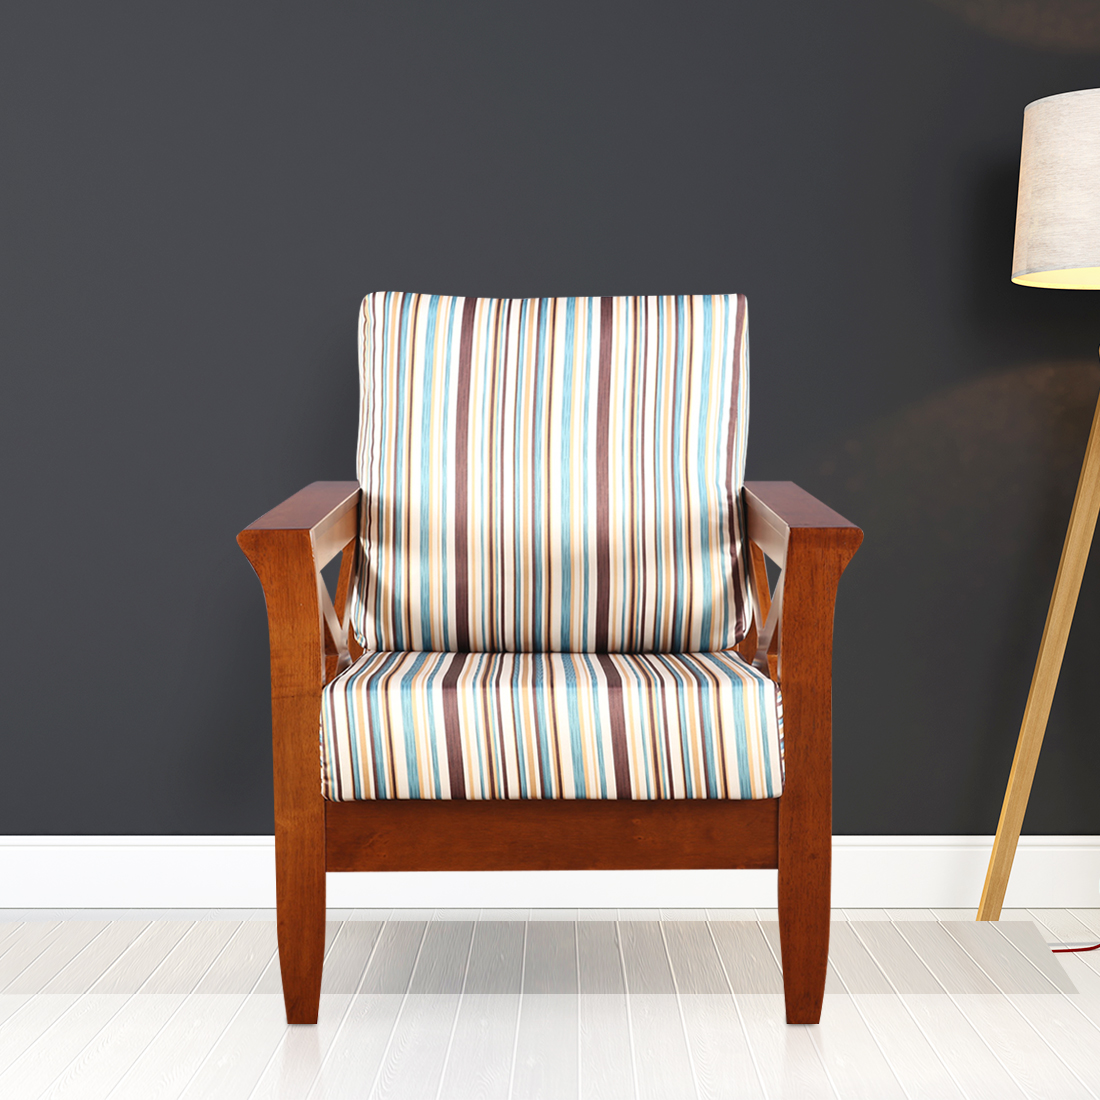 Aldrich Solid Wood Single Seater Sofa With Cushions in Stripes Colour by HomeTown